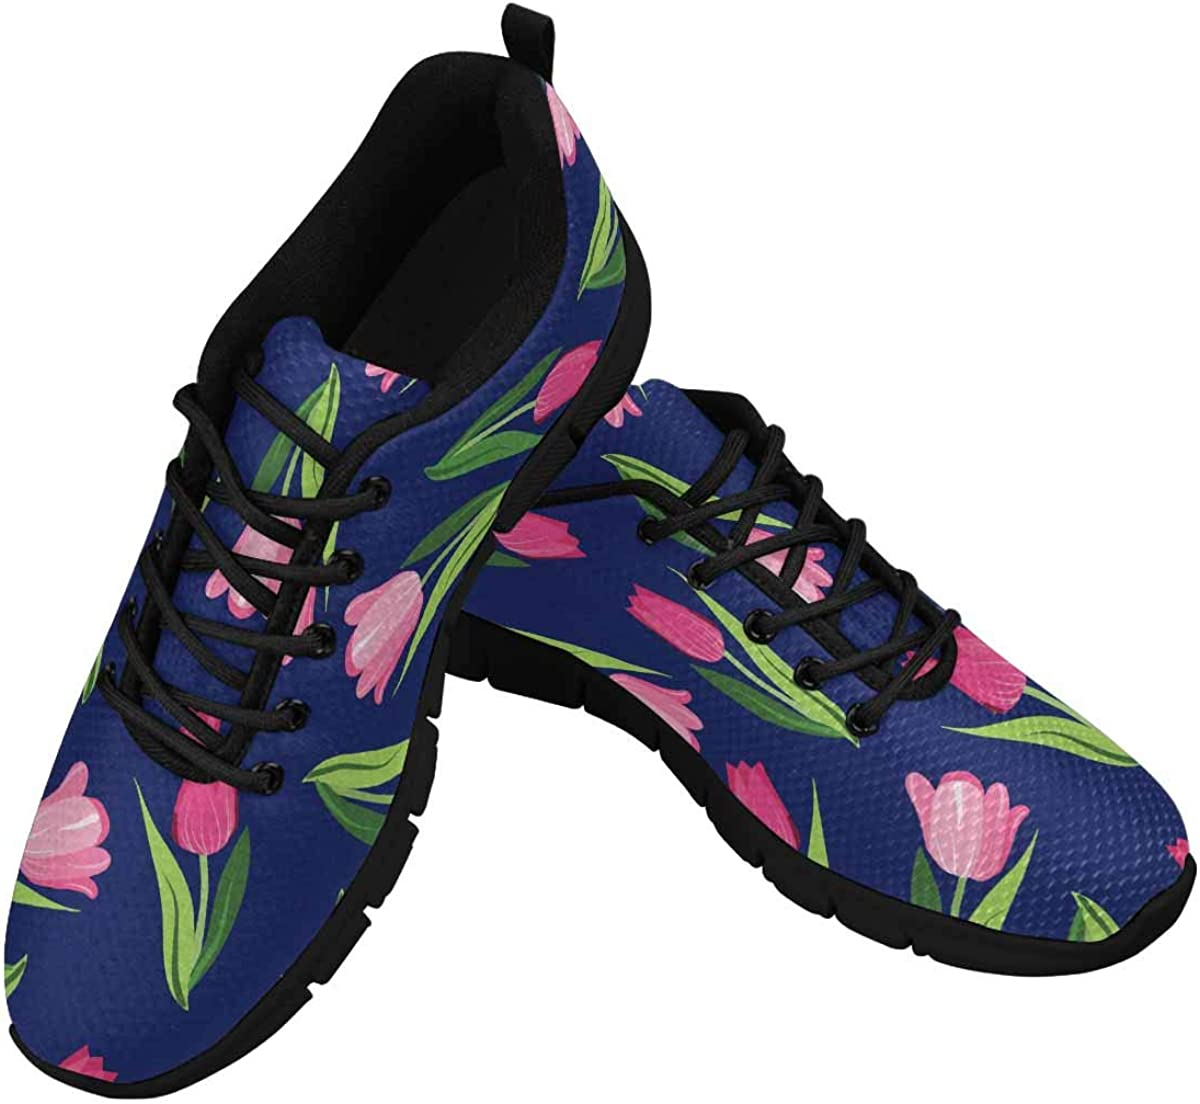 InterestPrint Romantic Tulips Women's Running Shoes Mesh Breathable Sports Casual Shoes